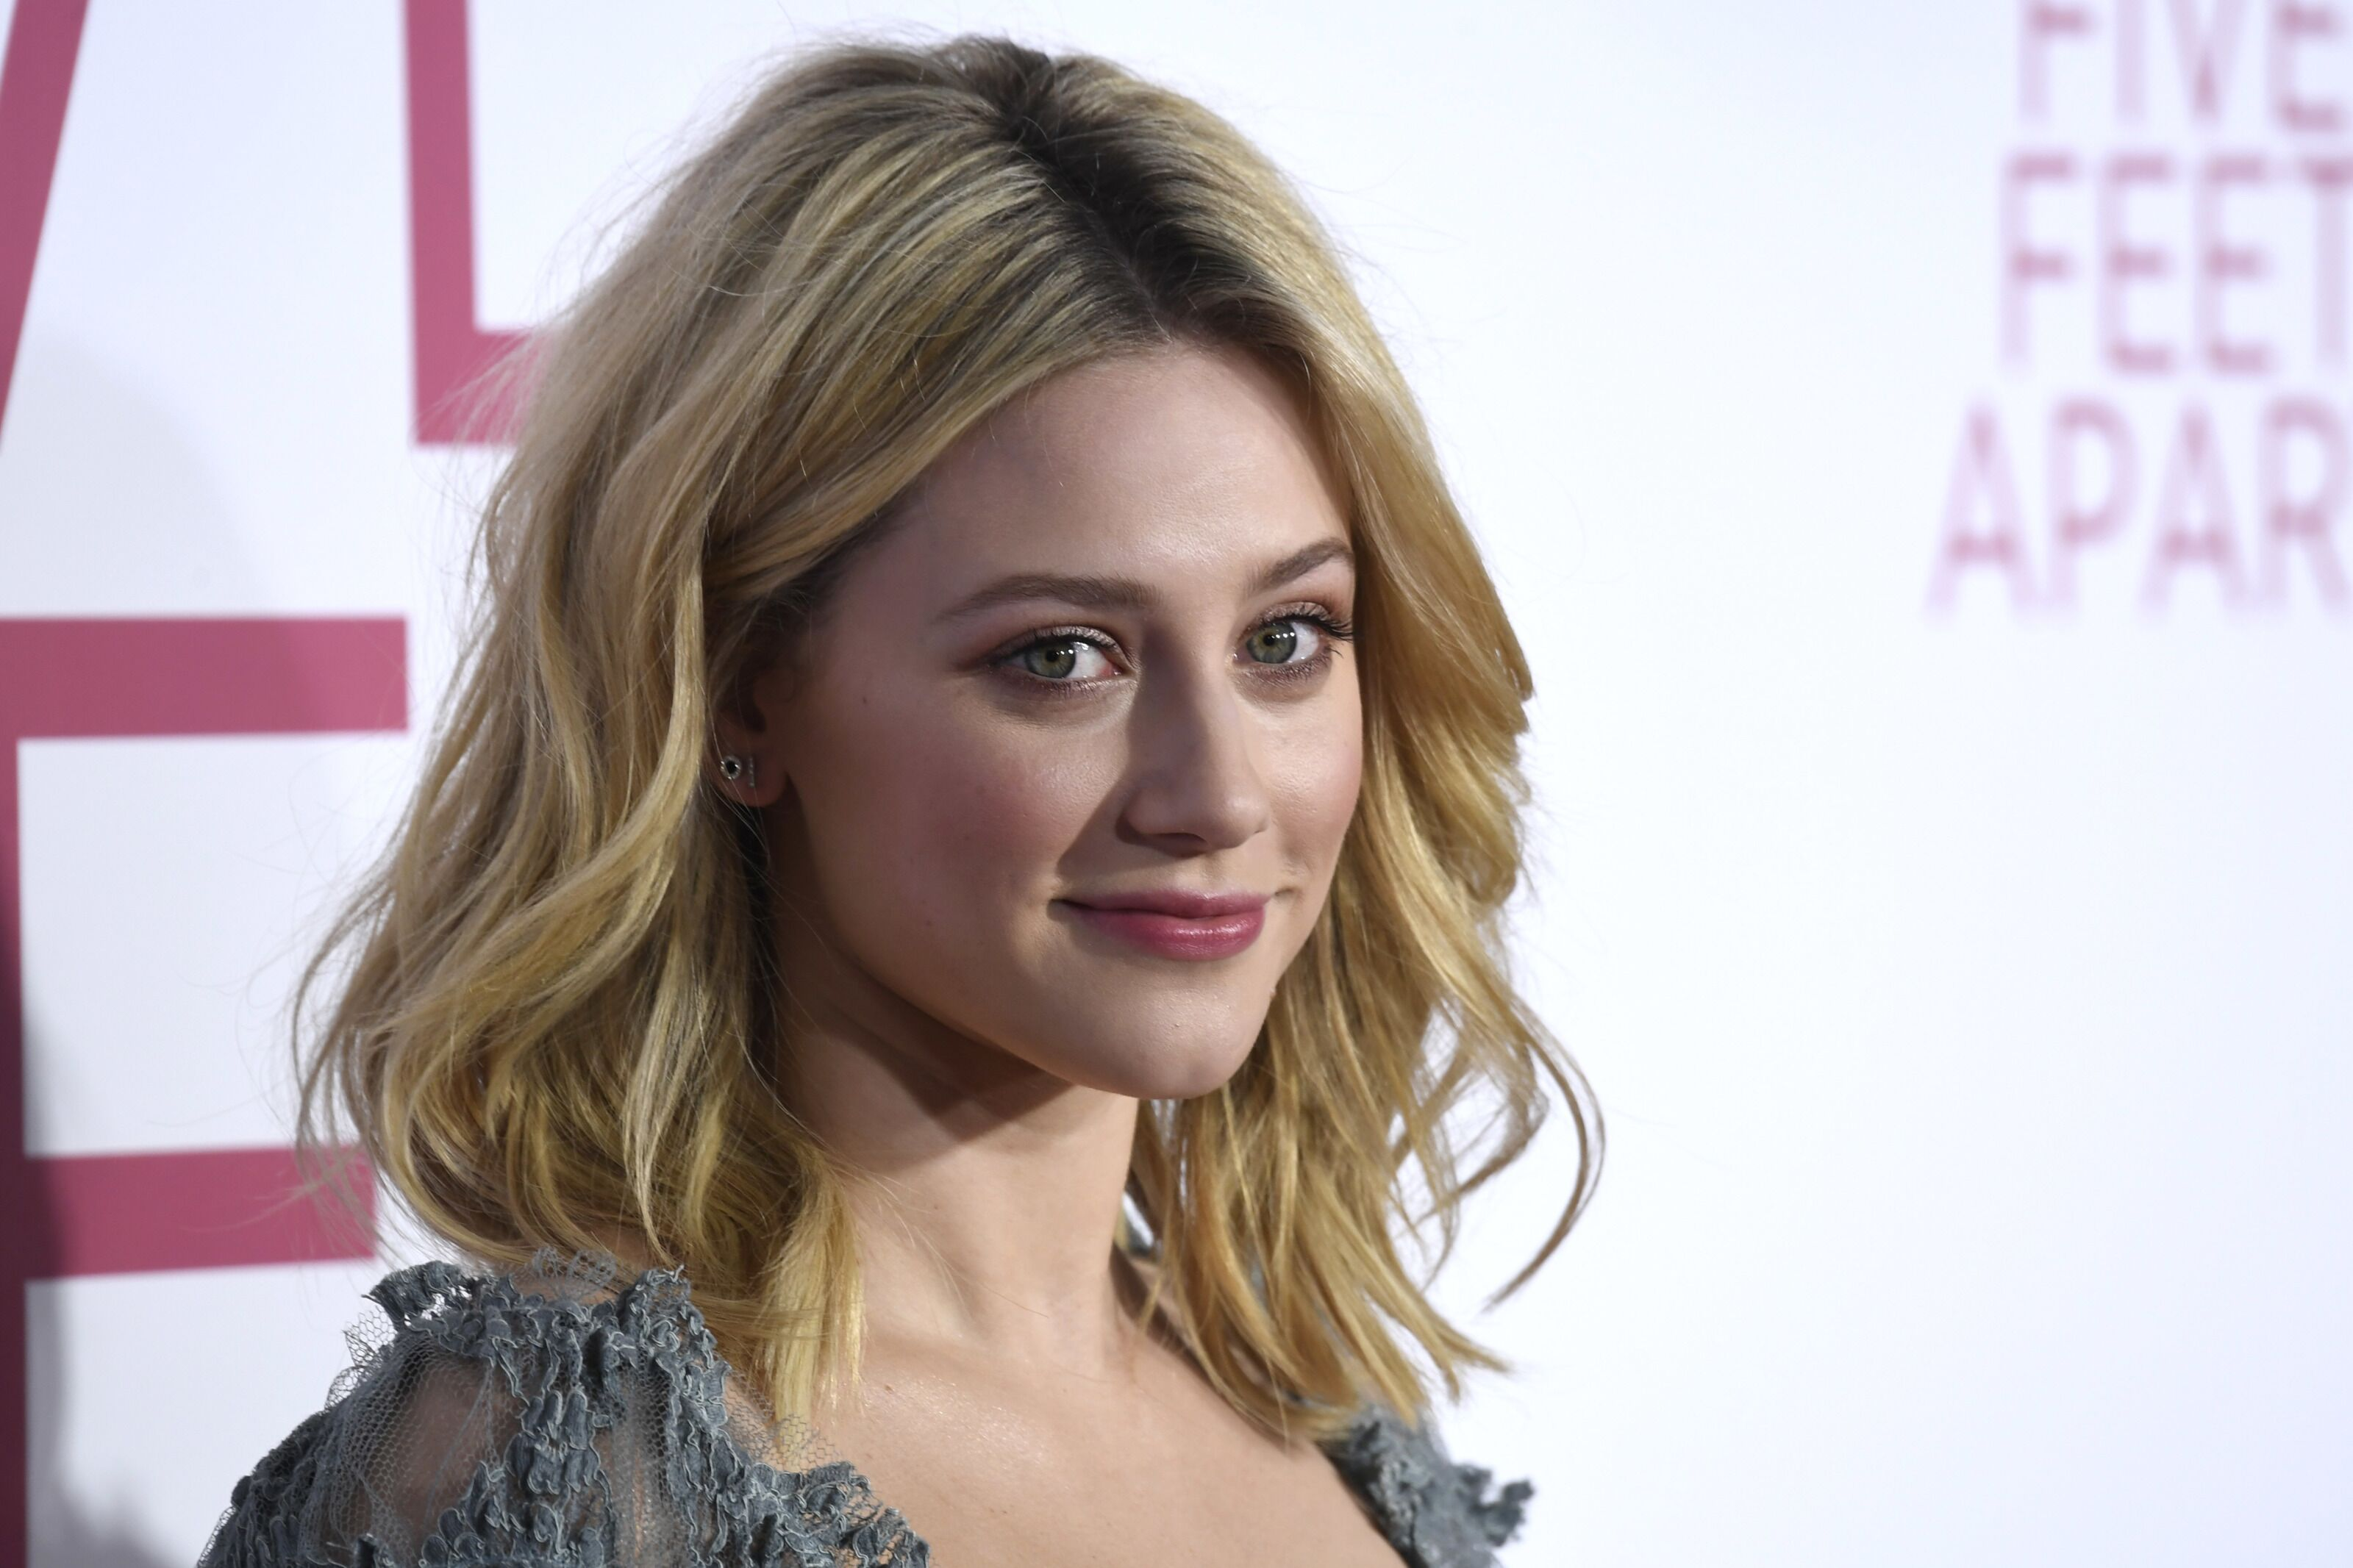 Amazon Studios' Chemical Hearts finds star and EP in Riverdale's Lili Reinhart